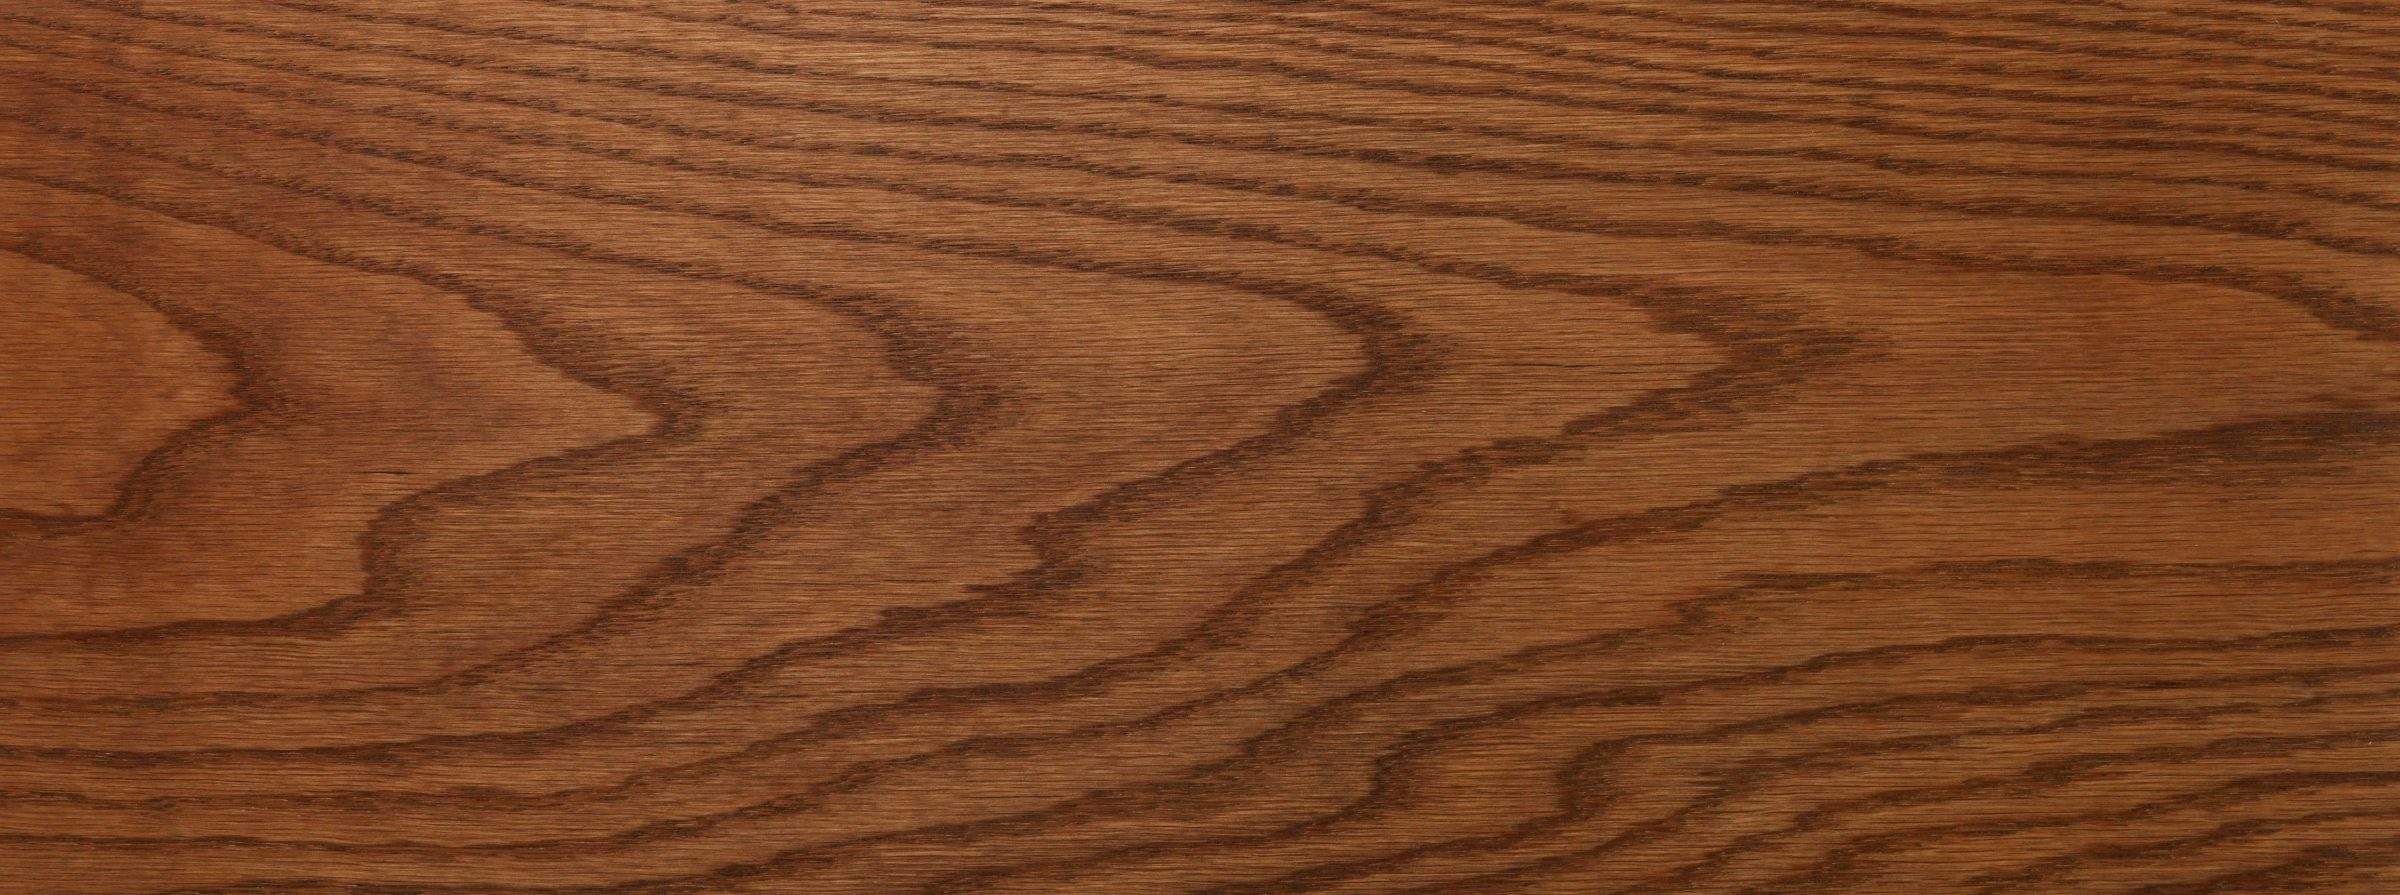 Oak 14mm engineered board, Walnut oil, 1sqm pack